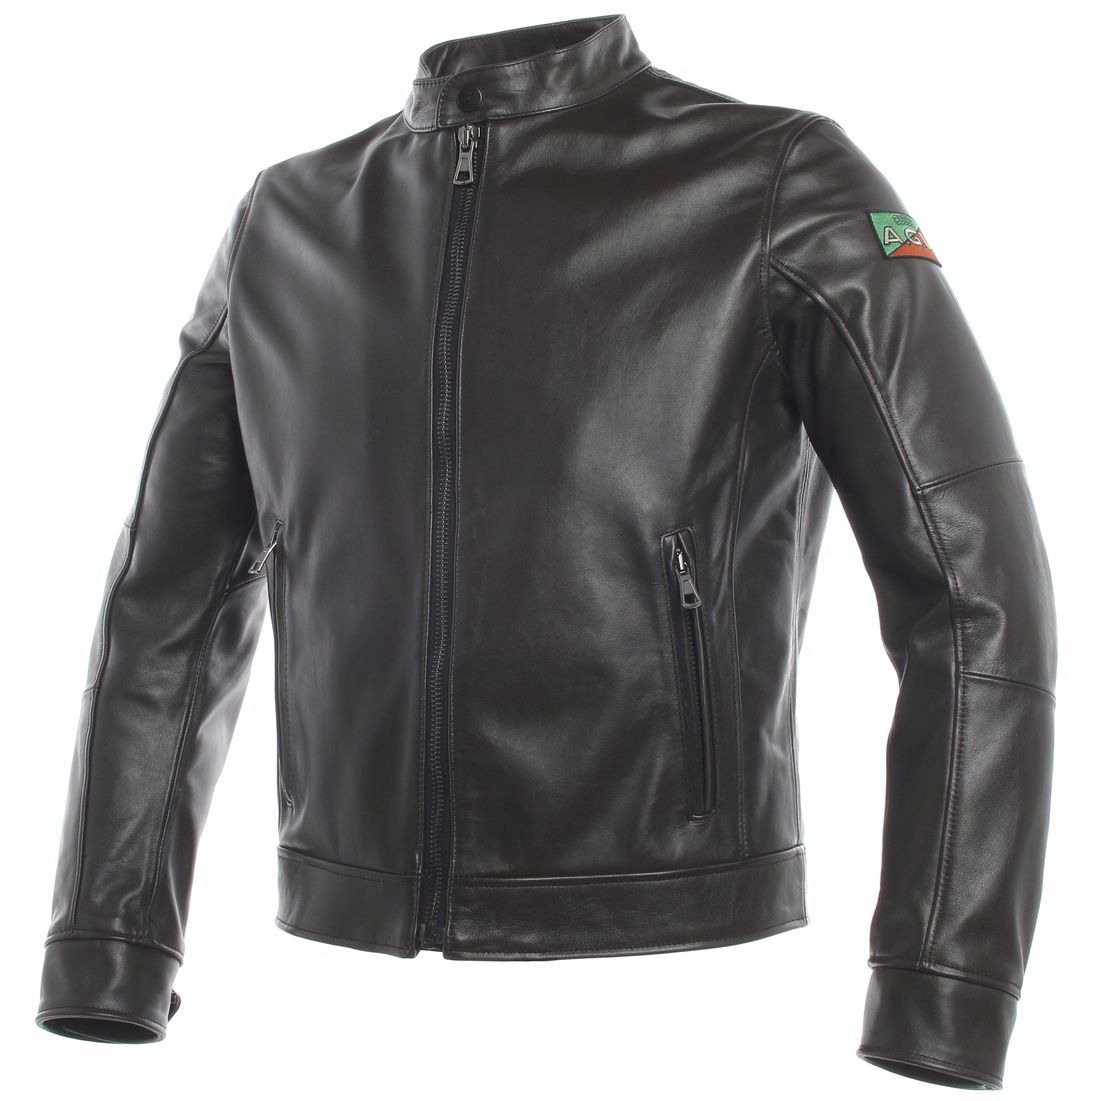 Blouson Dainese AGV 1947 LEATHER